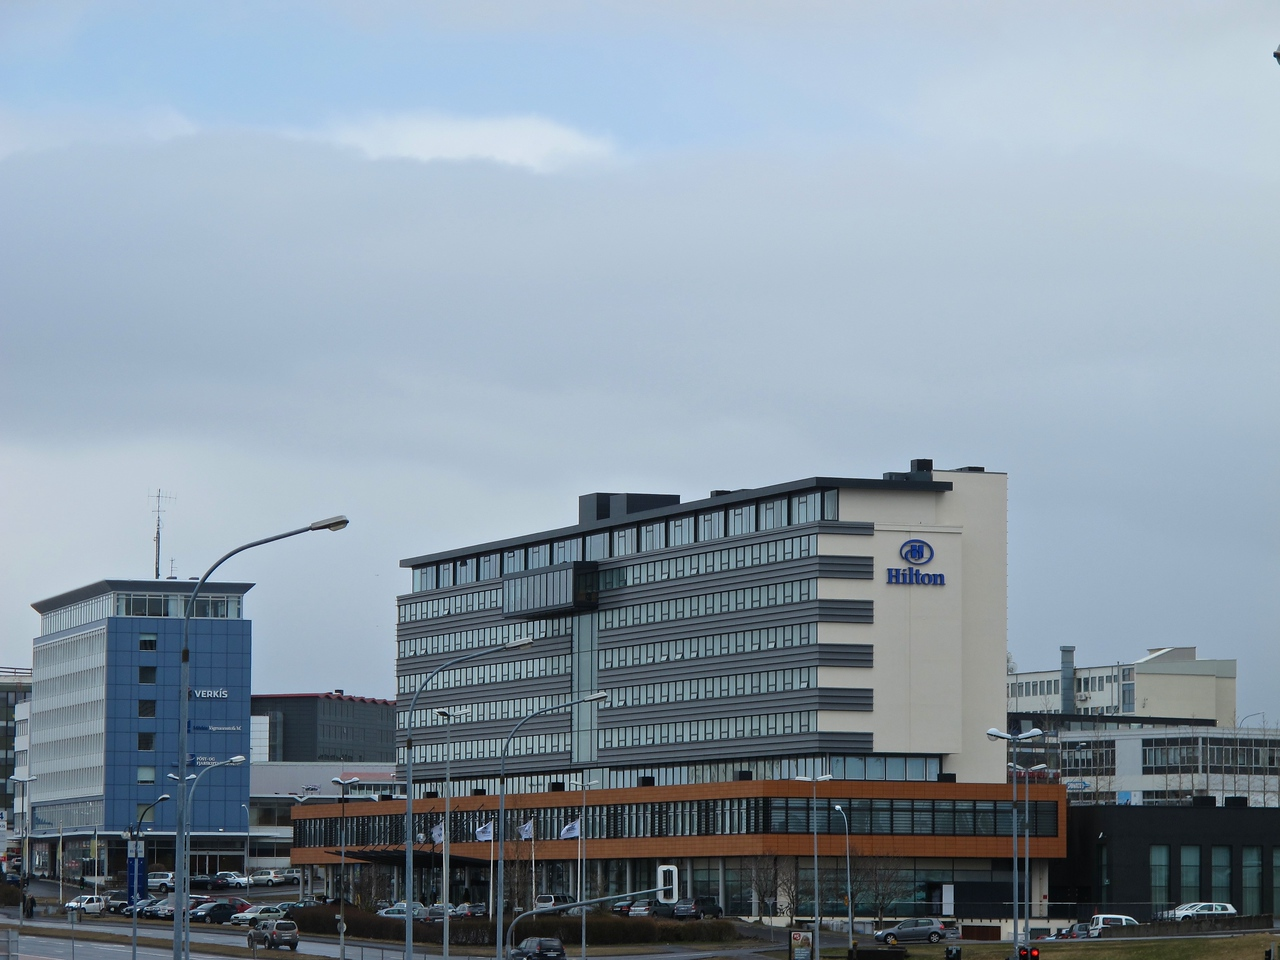 During our visit to Reykjavik we stayed at the Hilton Nordica, on the outskirts of the city.